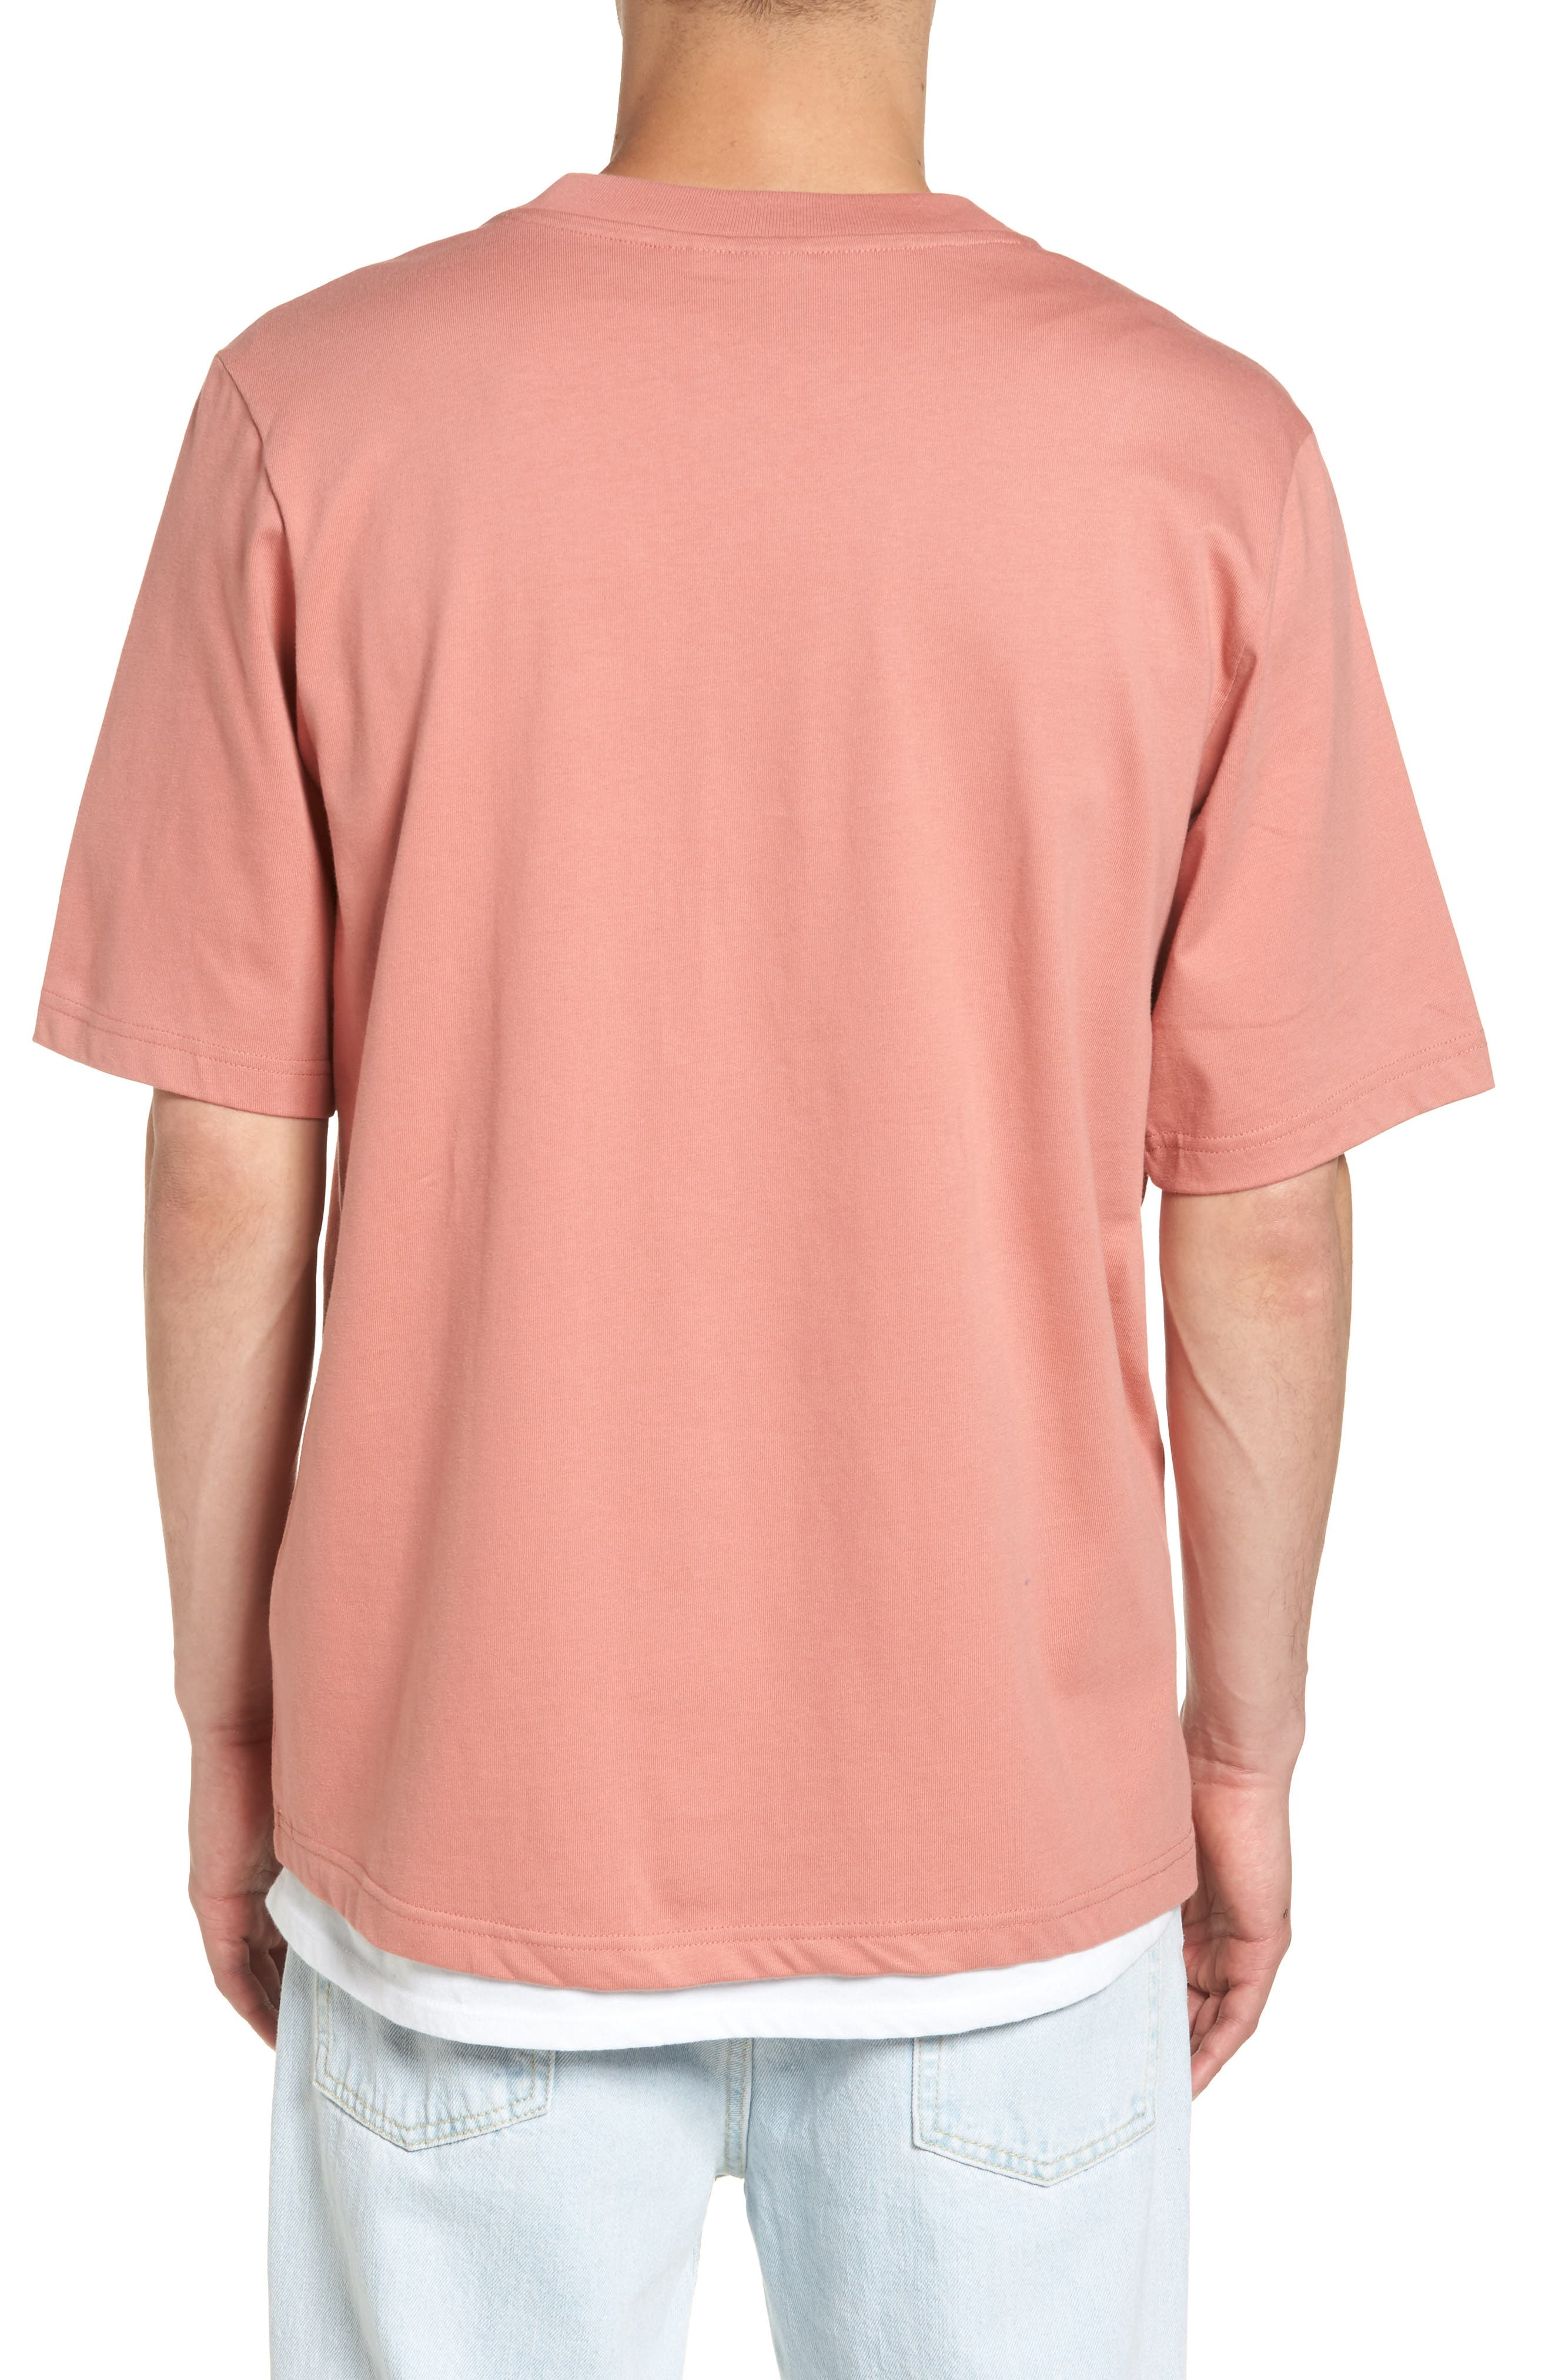 Alternate Image 2  - adidas Originals AC Boxy Oversize T-Shirt